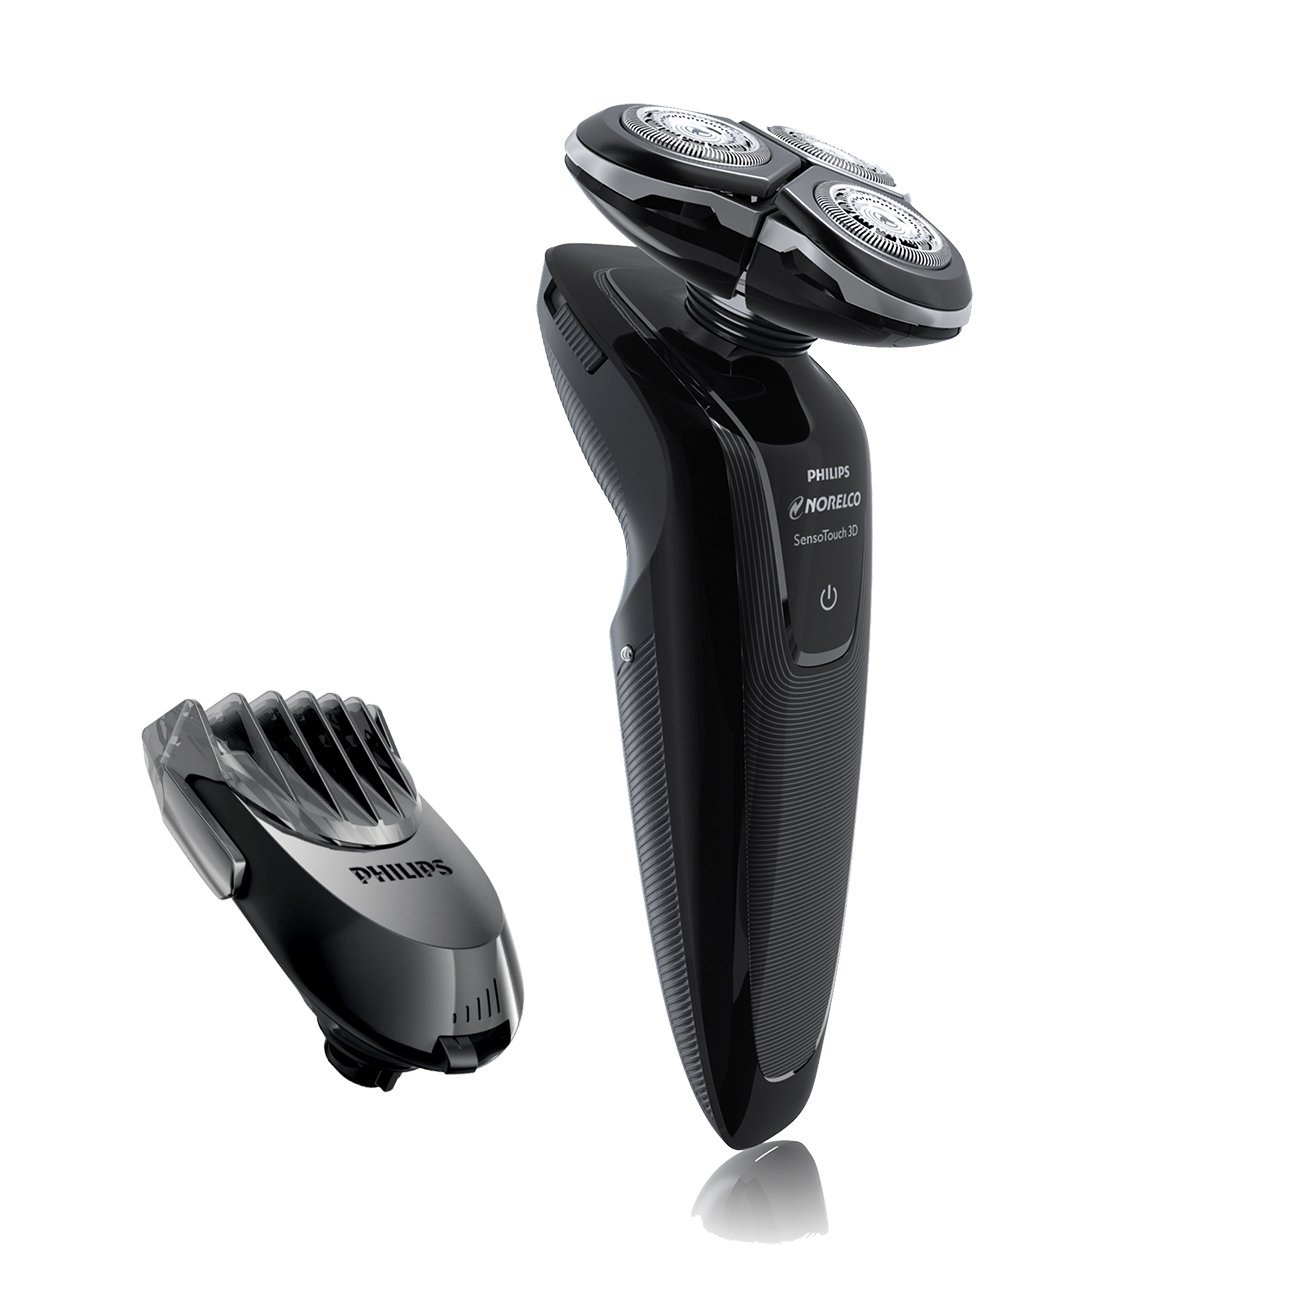 philips norelco electric razor 1250xhp sensotouch gyroflex 3d new bonus 075020025913 ebay. Black Bedroom Furniture Sets. Home Design Ideas